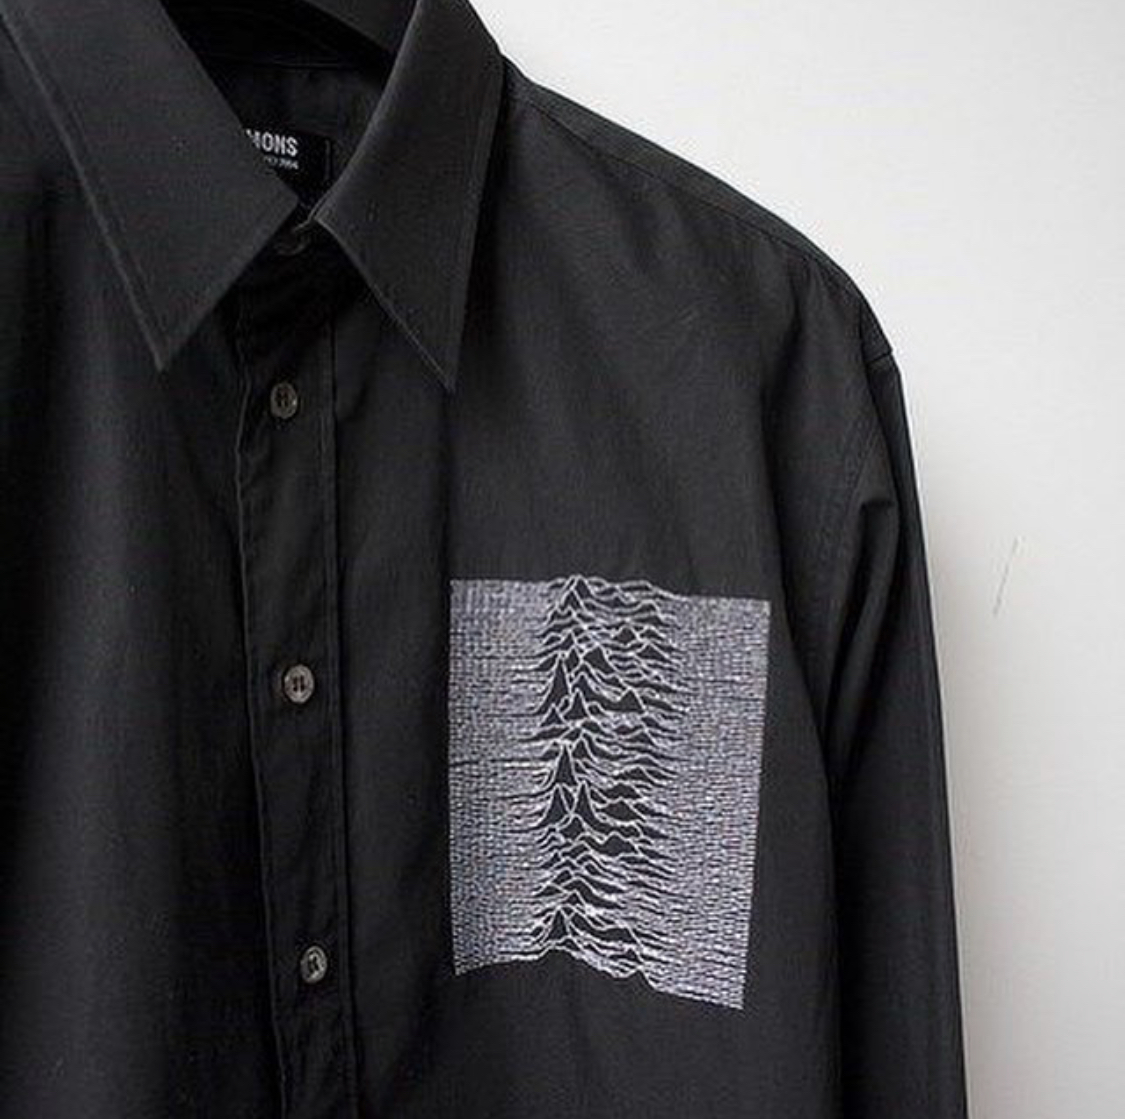 Closer AW 03 raf simons unknown pleasures